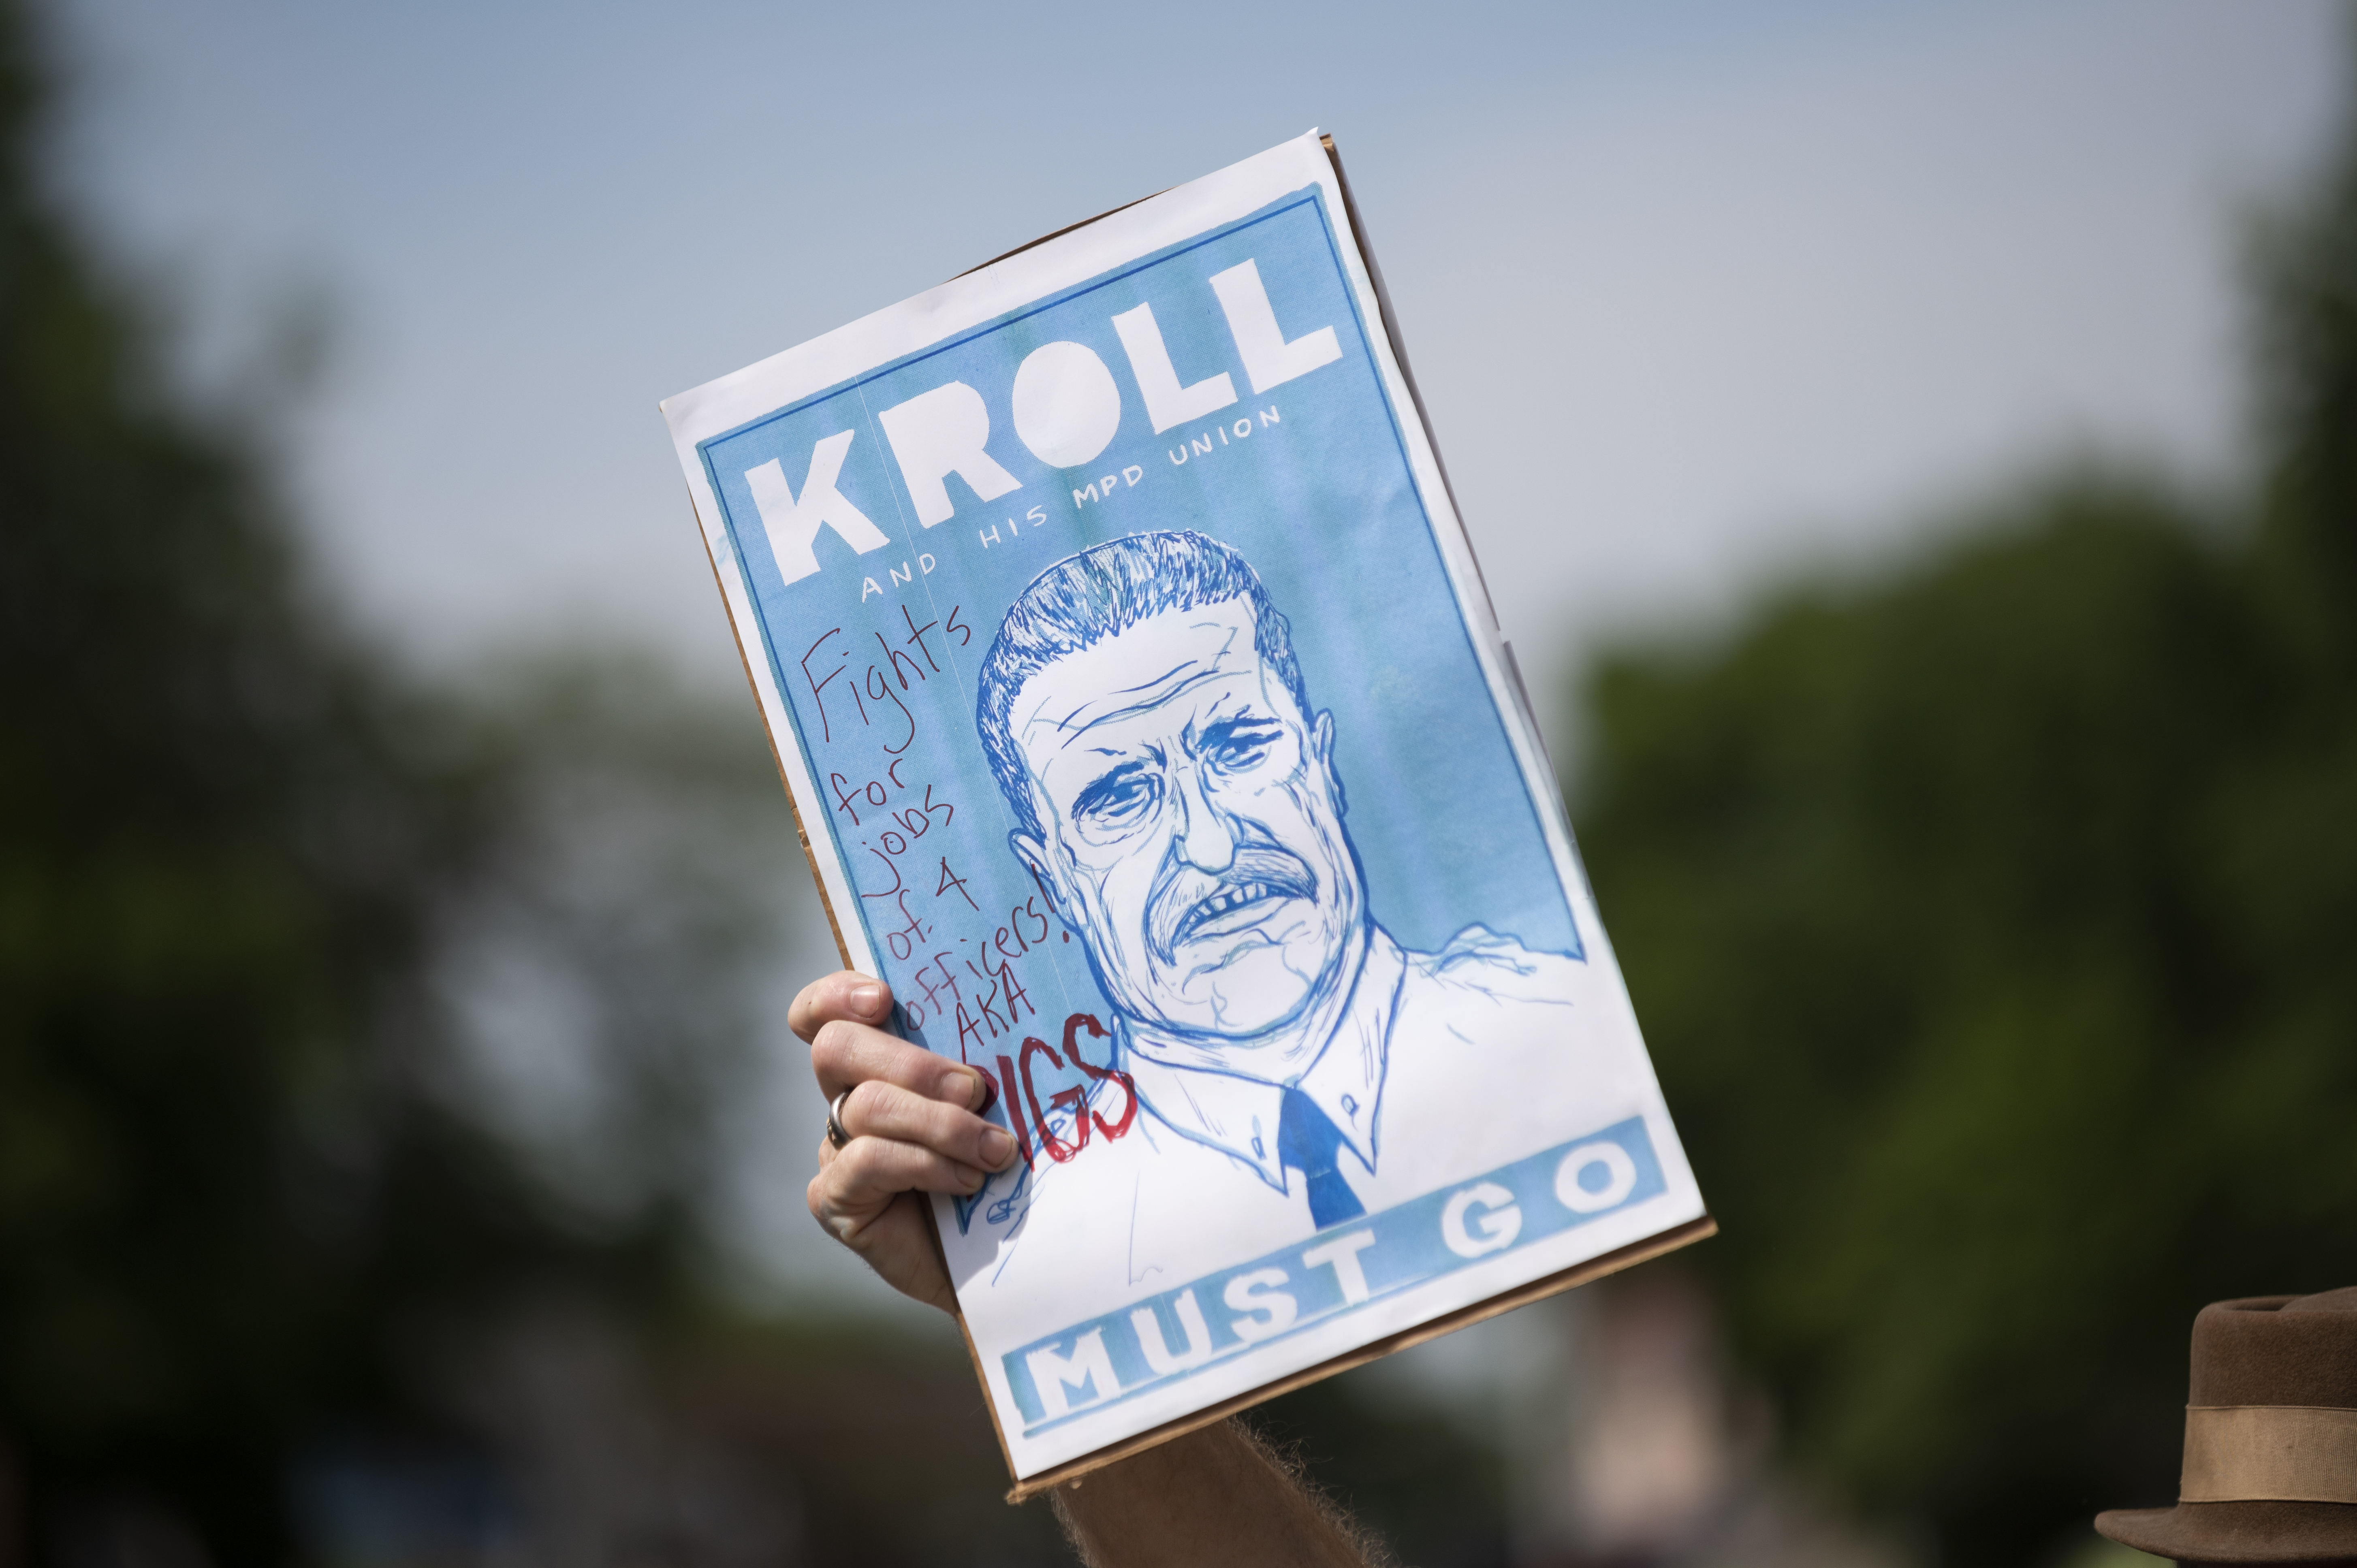 """A man holds up a sign reading """"Kroll Must Go"""" during a march calling for the city to defund the Minneapolis Police Department on June 6, 2020 in Minneapolis, Minnesota. (Photo by Stephen Maturen/Getty Images)"""